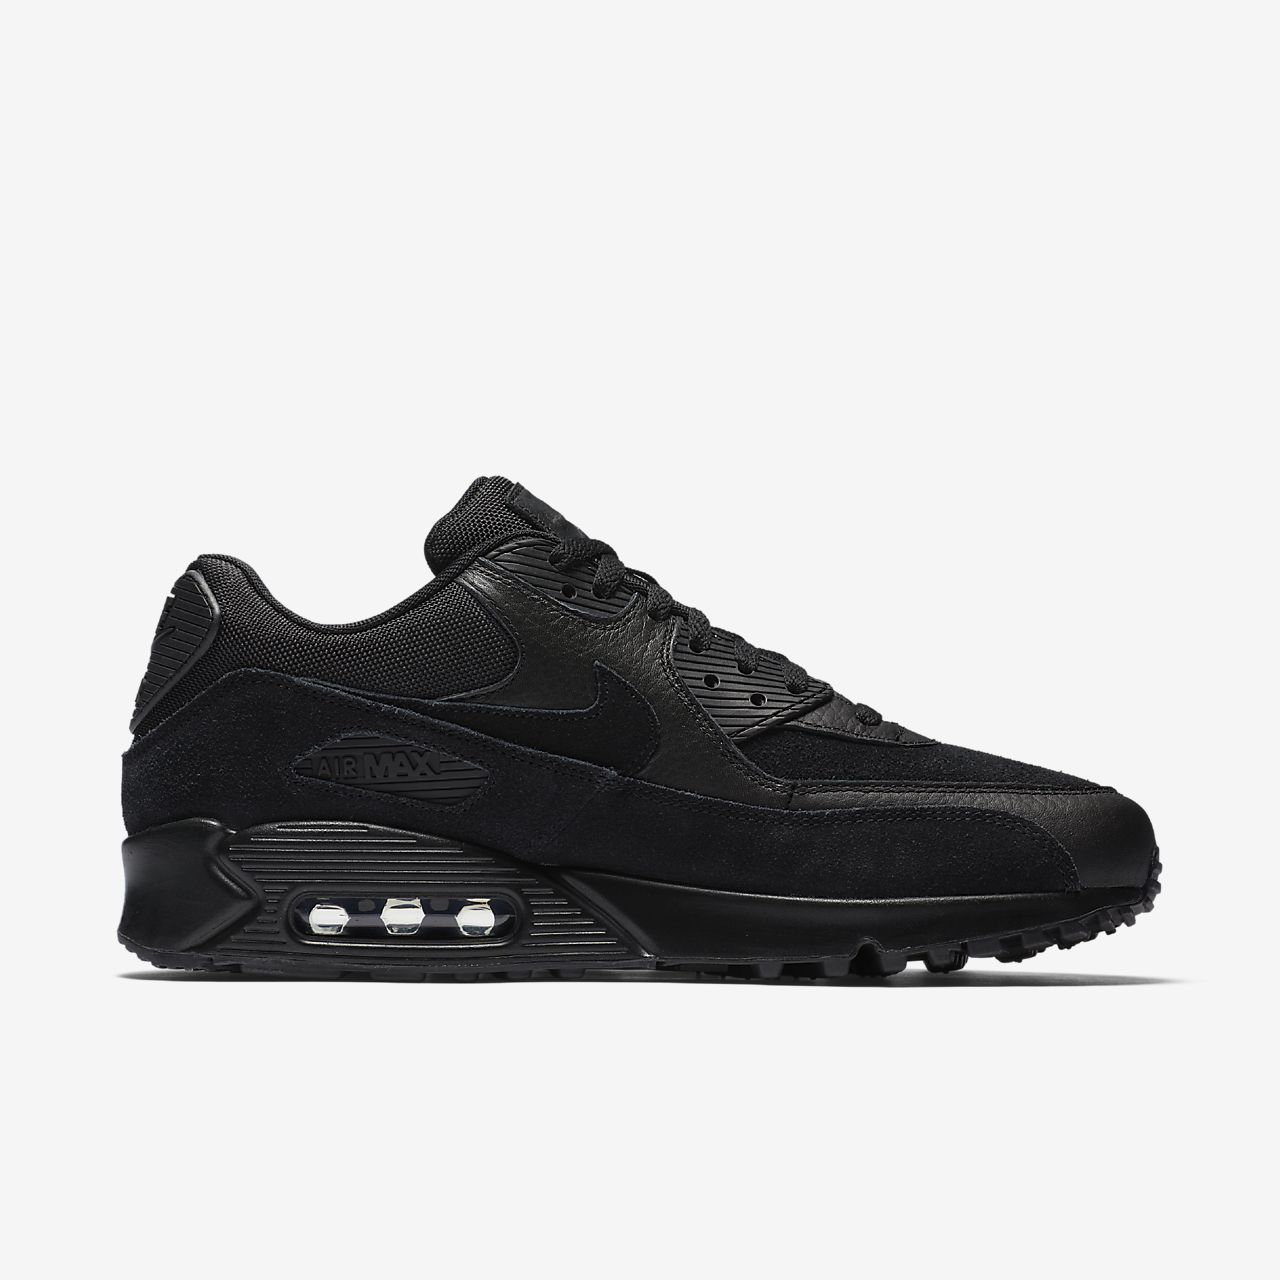 promo code 1fac2 3081a ... wholesale nike air max 90 sneakerboot black dark charcoal end. 548f8  09bb0